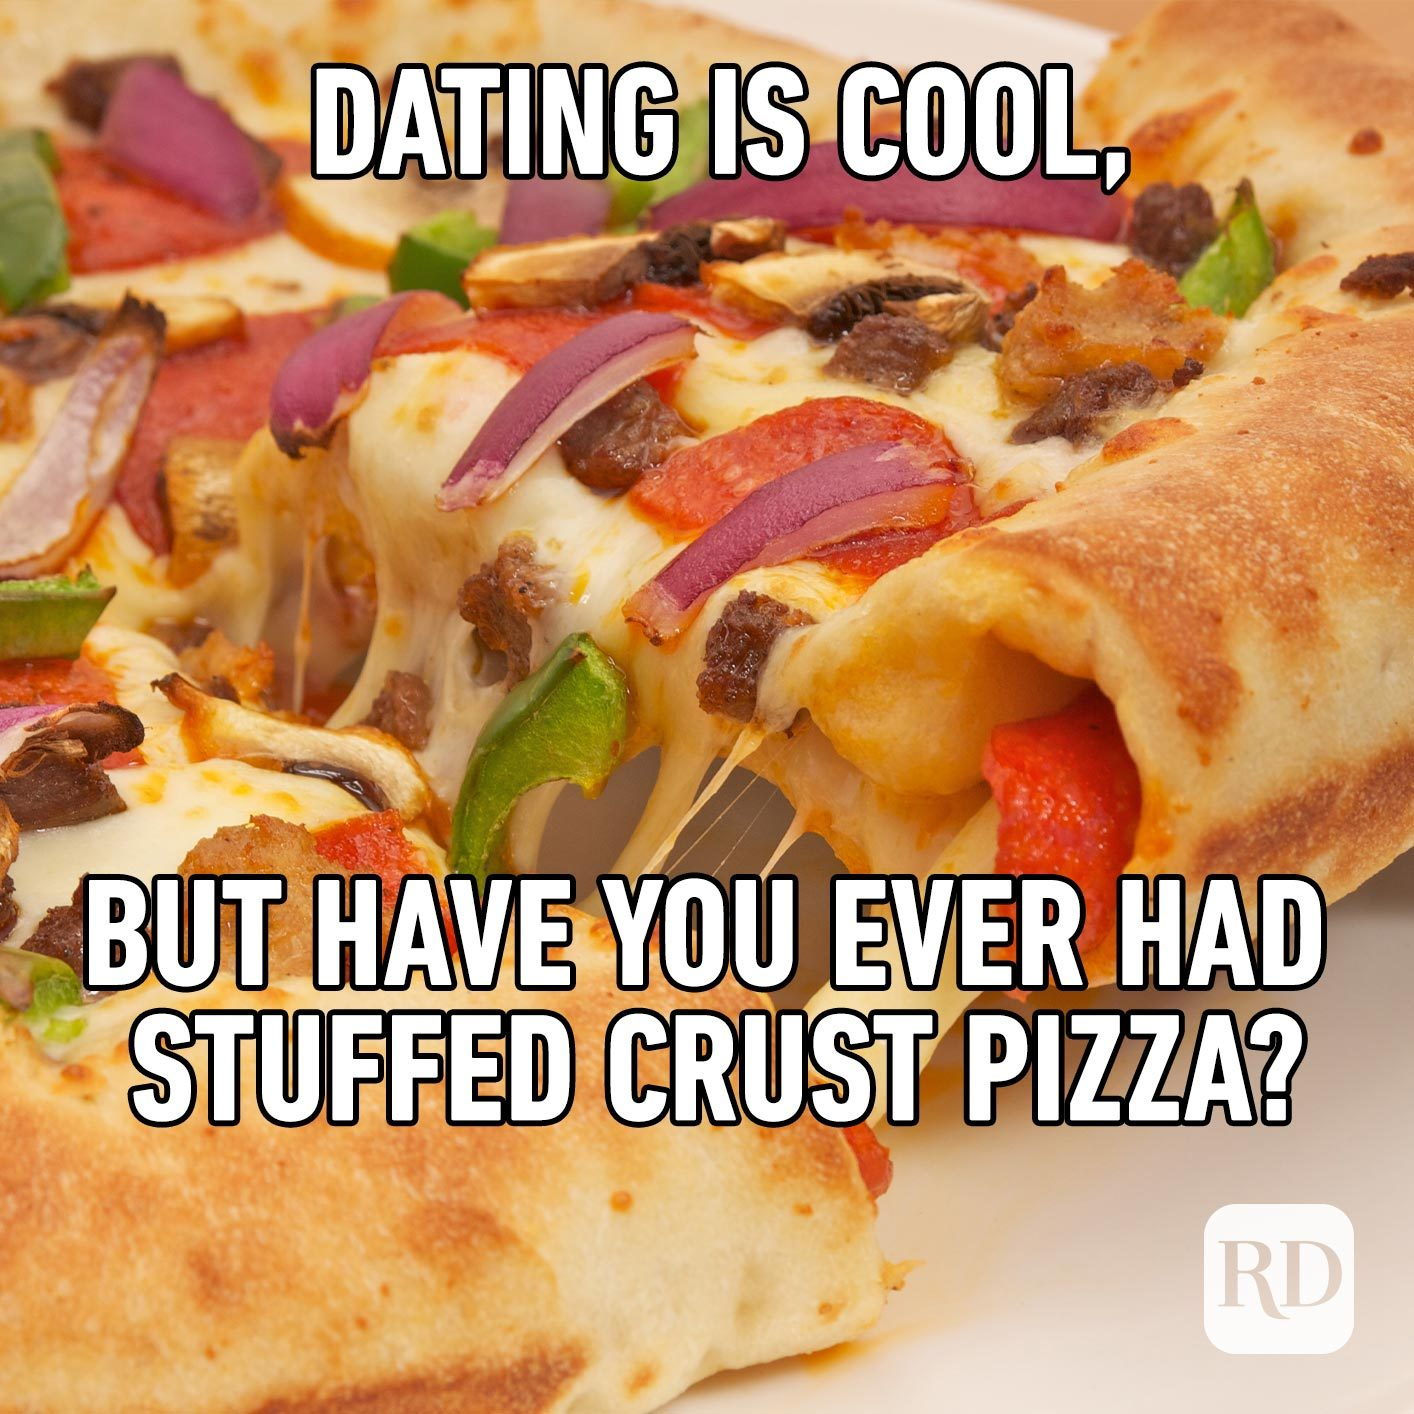 Thick, stuffed-crust pizza. Meme text: Dating is cool, but have you ever had stuffed crust pizza?